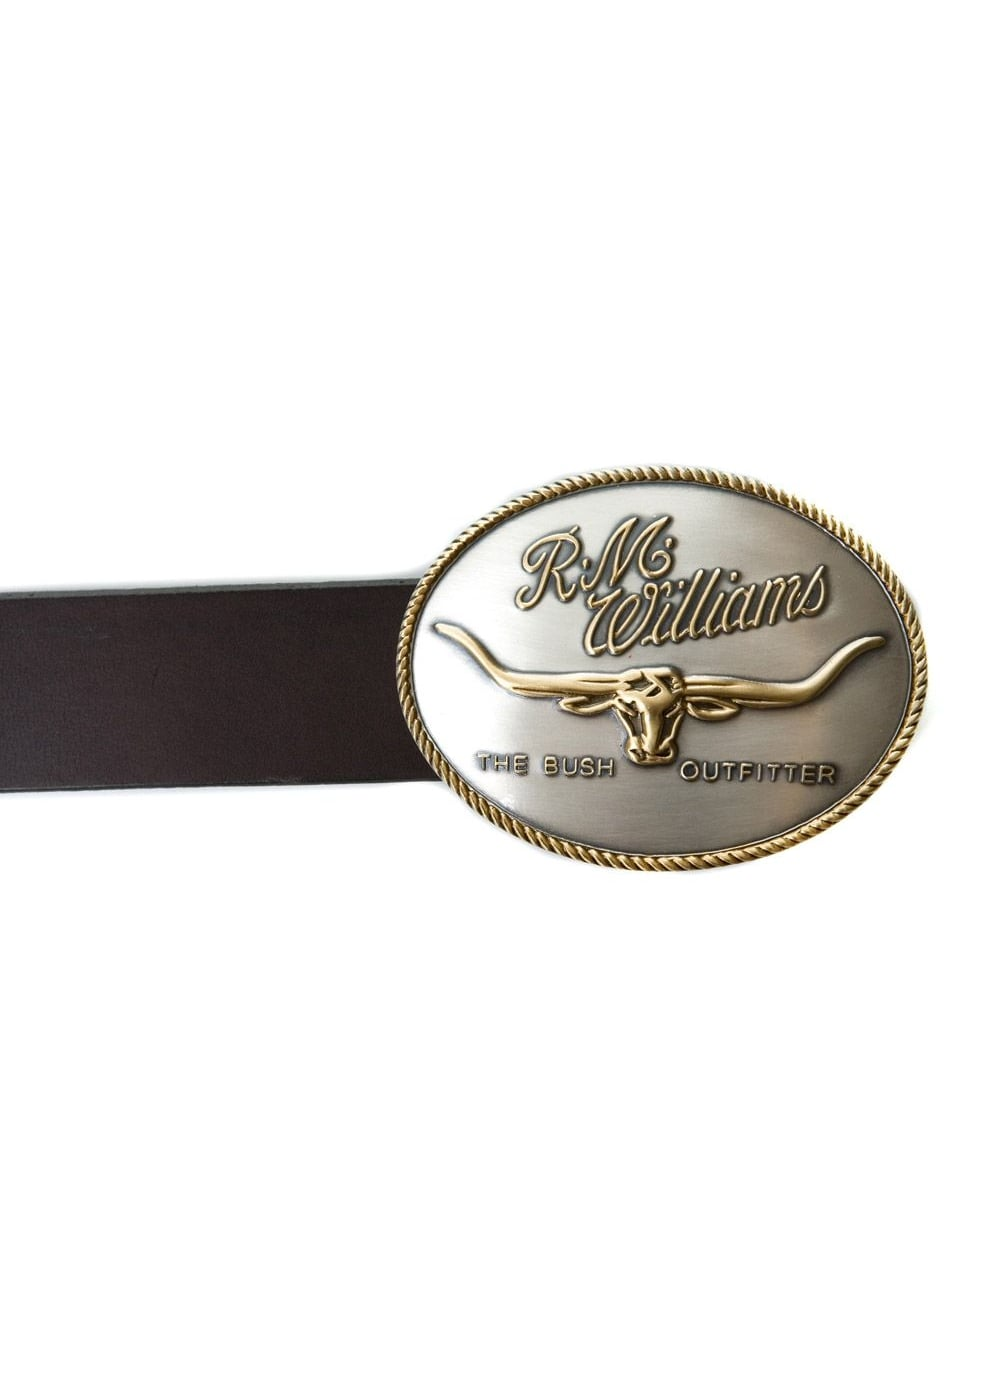 RM Williams Longhorn Trophy Buckle Large Image